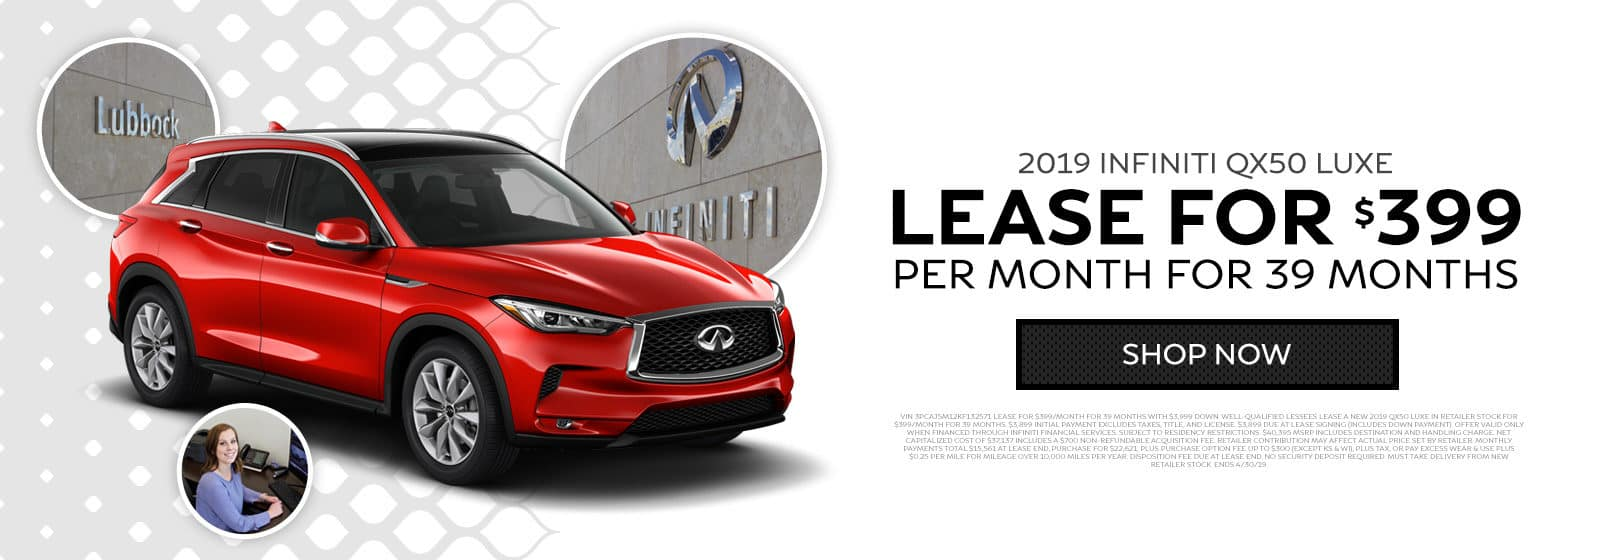 2019 INFINITI QX50 Luxe - Lease for $399 per month for 39 months - Shop now